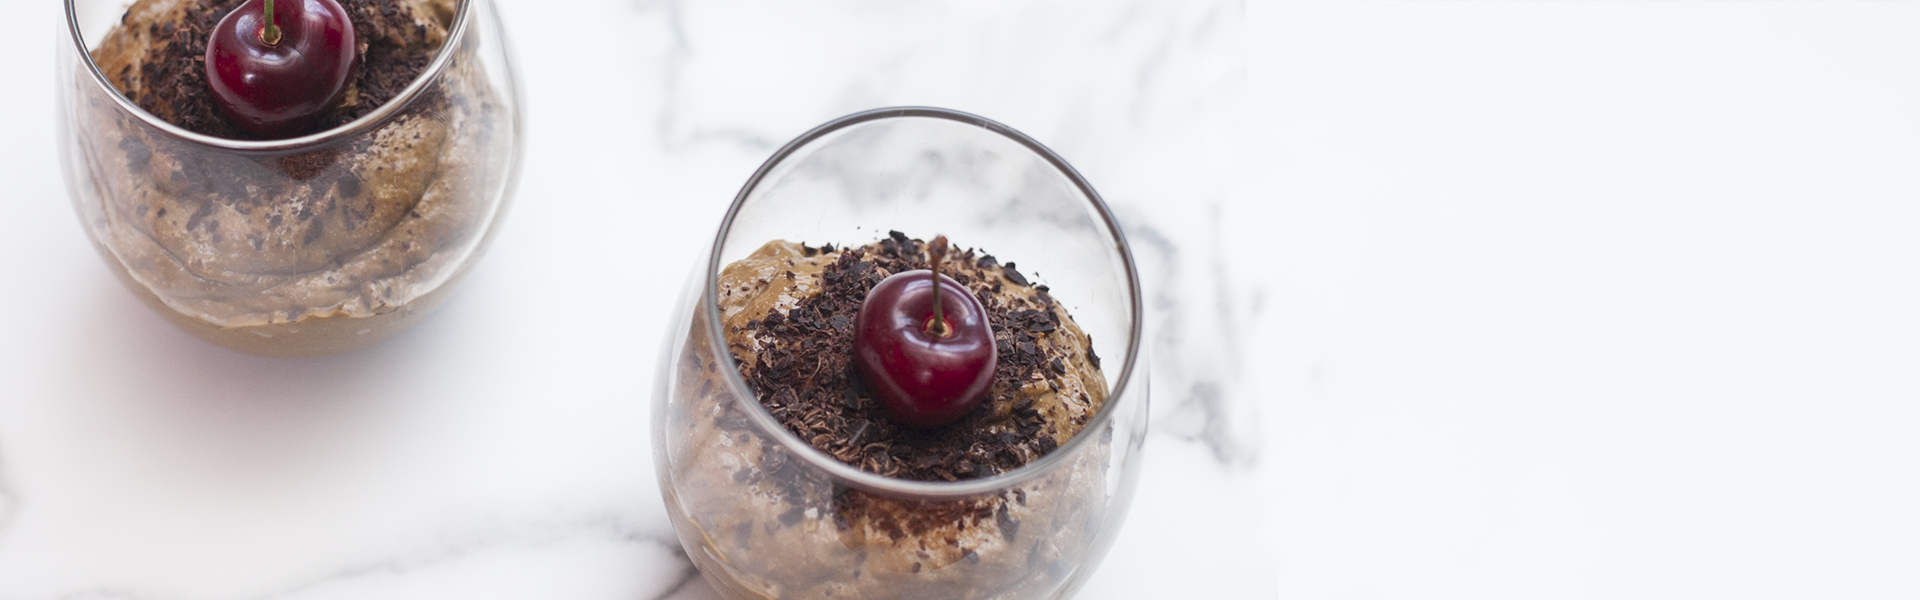 LCHF Chocolate Mousse